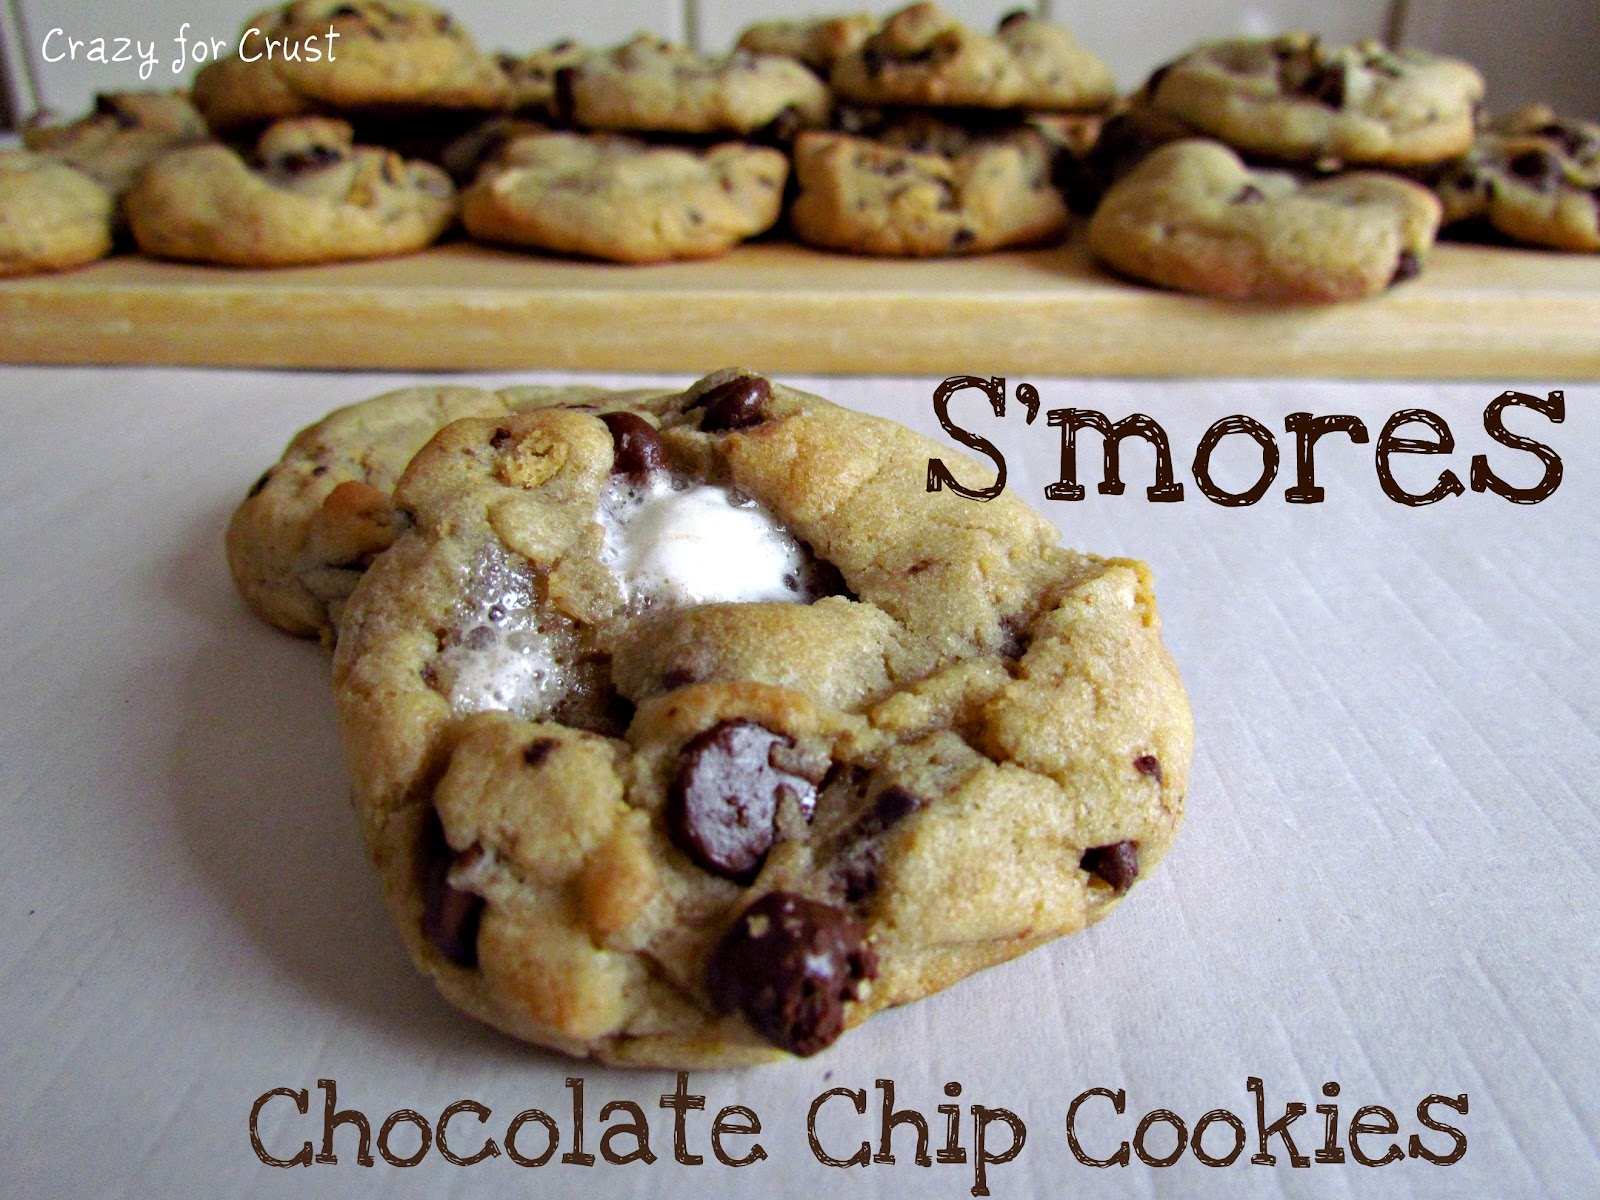 mores Cookies - Crazy for Crust